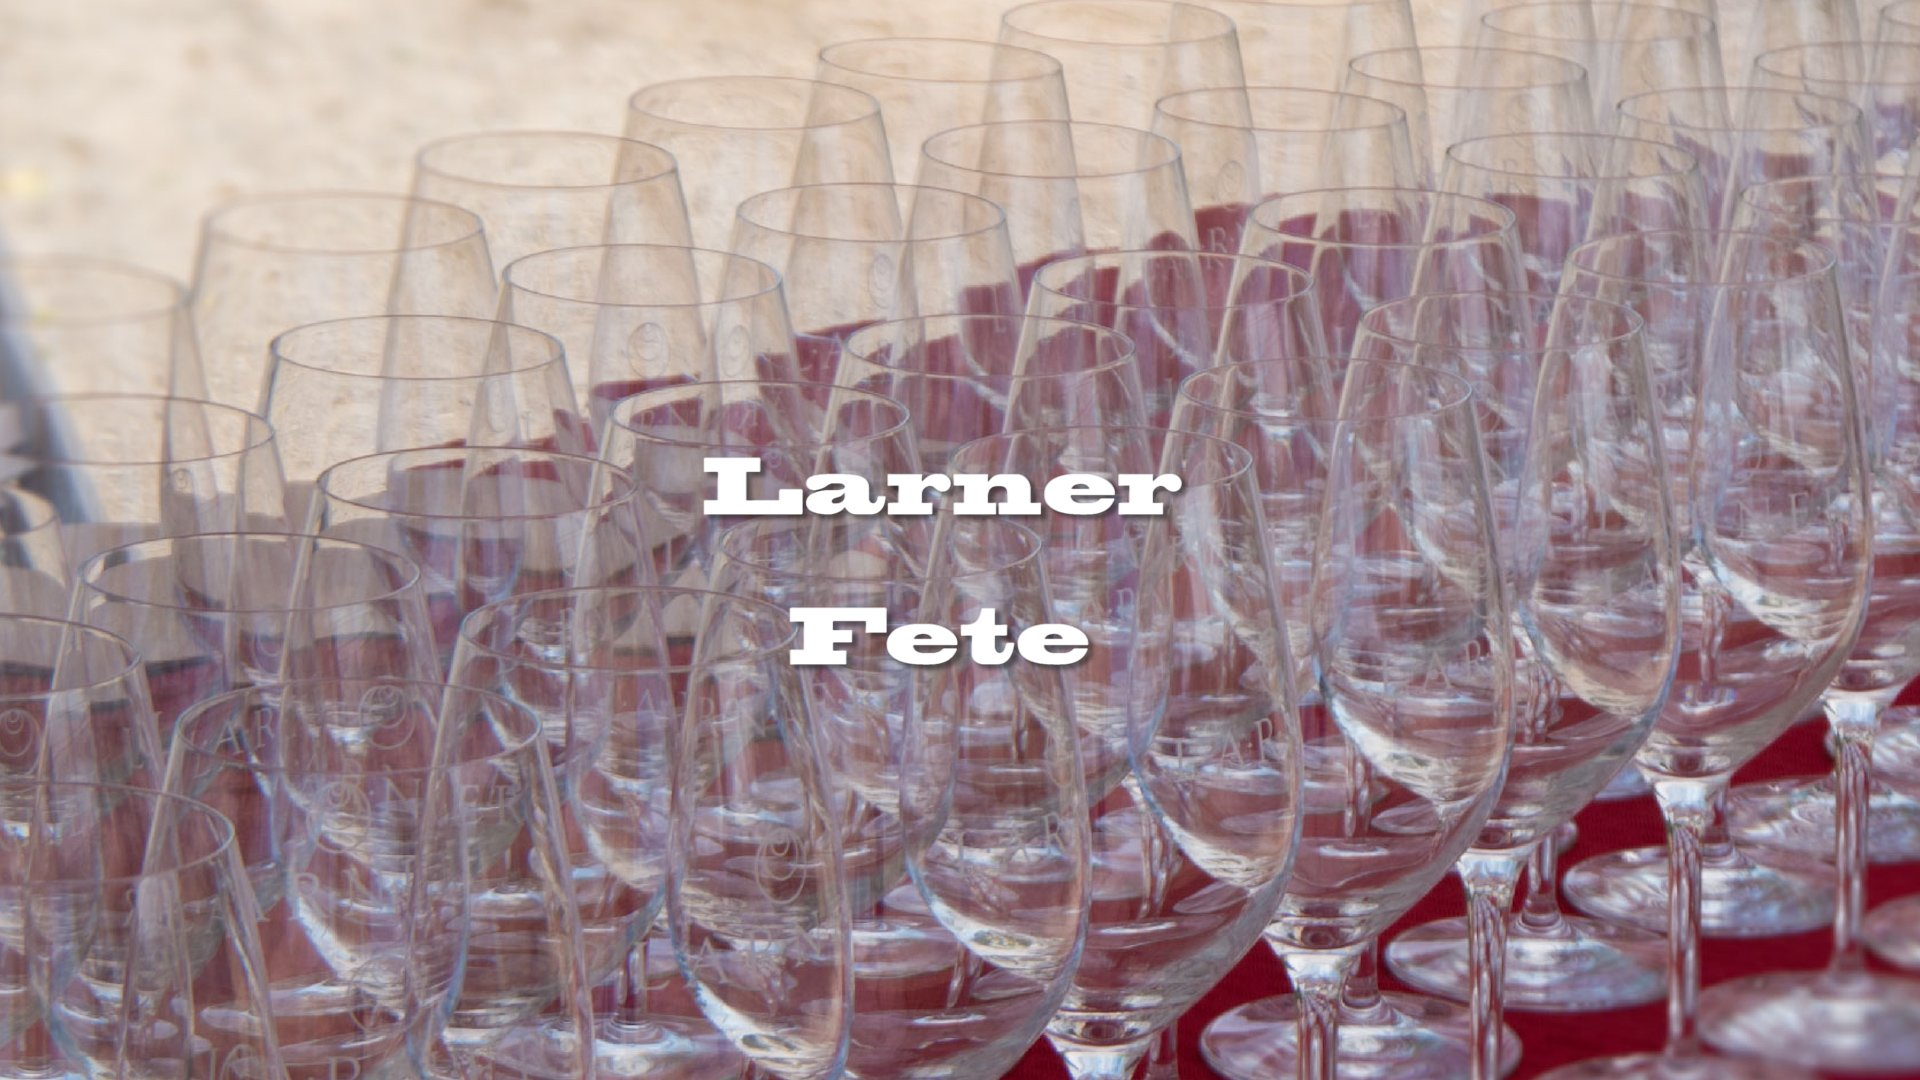 Larner fete, how it came to be